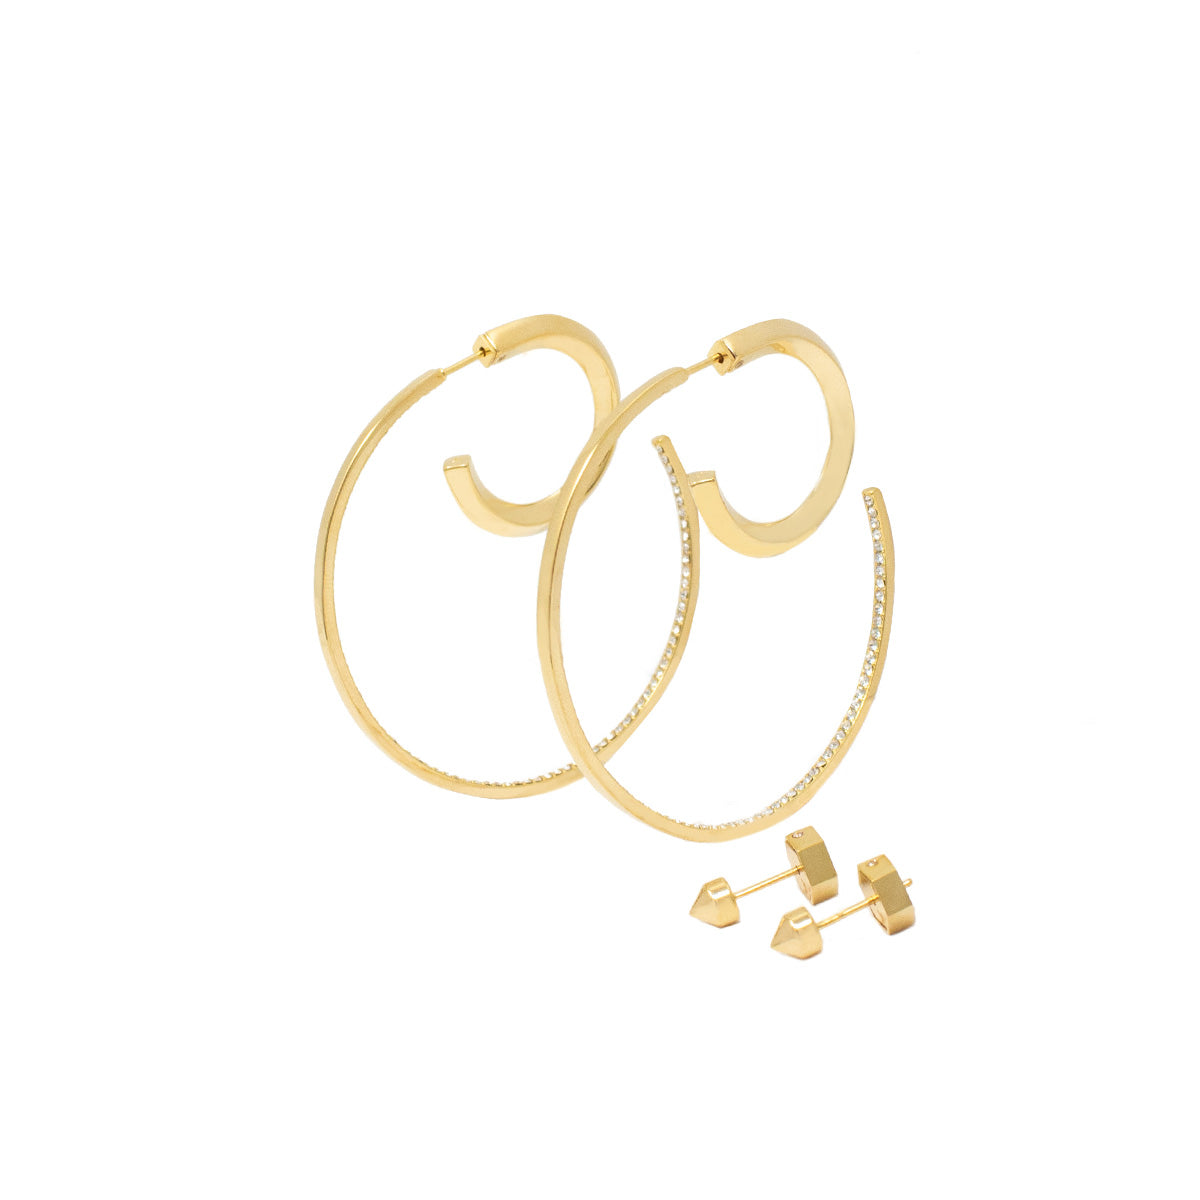 Cira Reversible Hoop Earrings Set - Gold